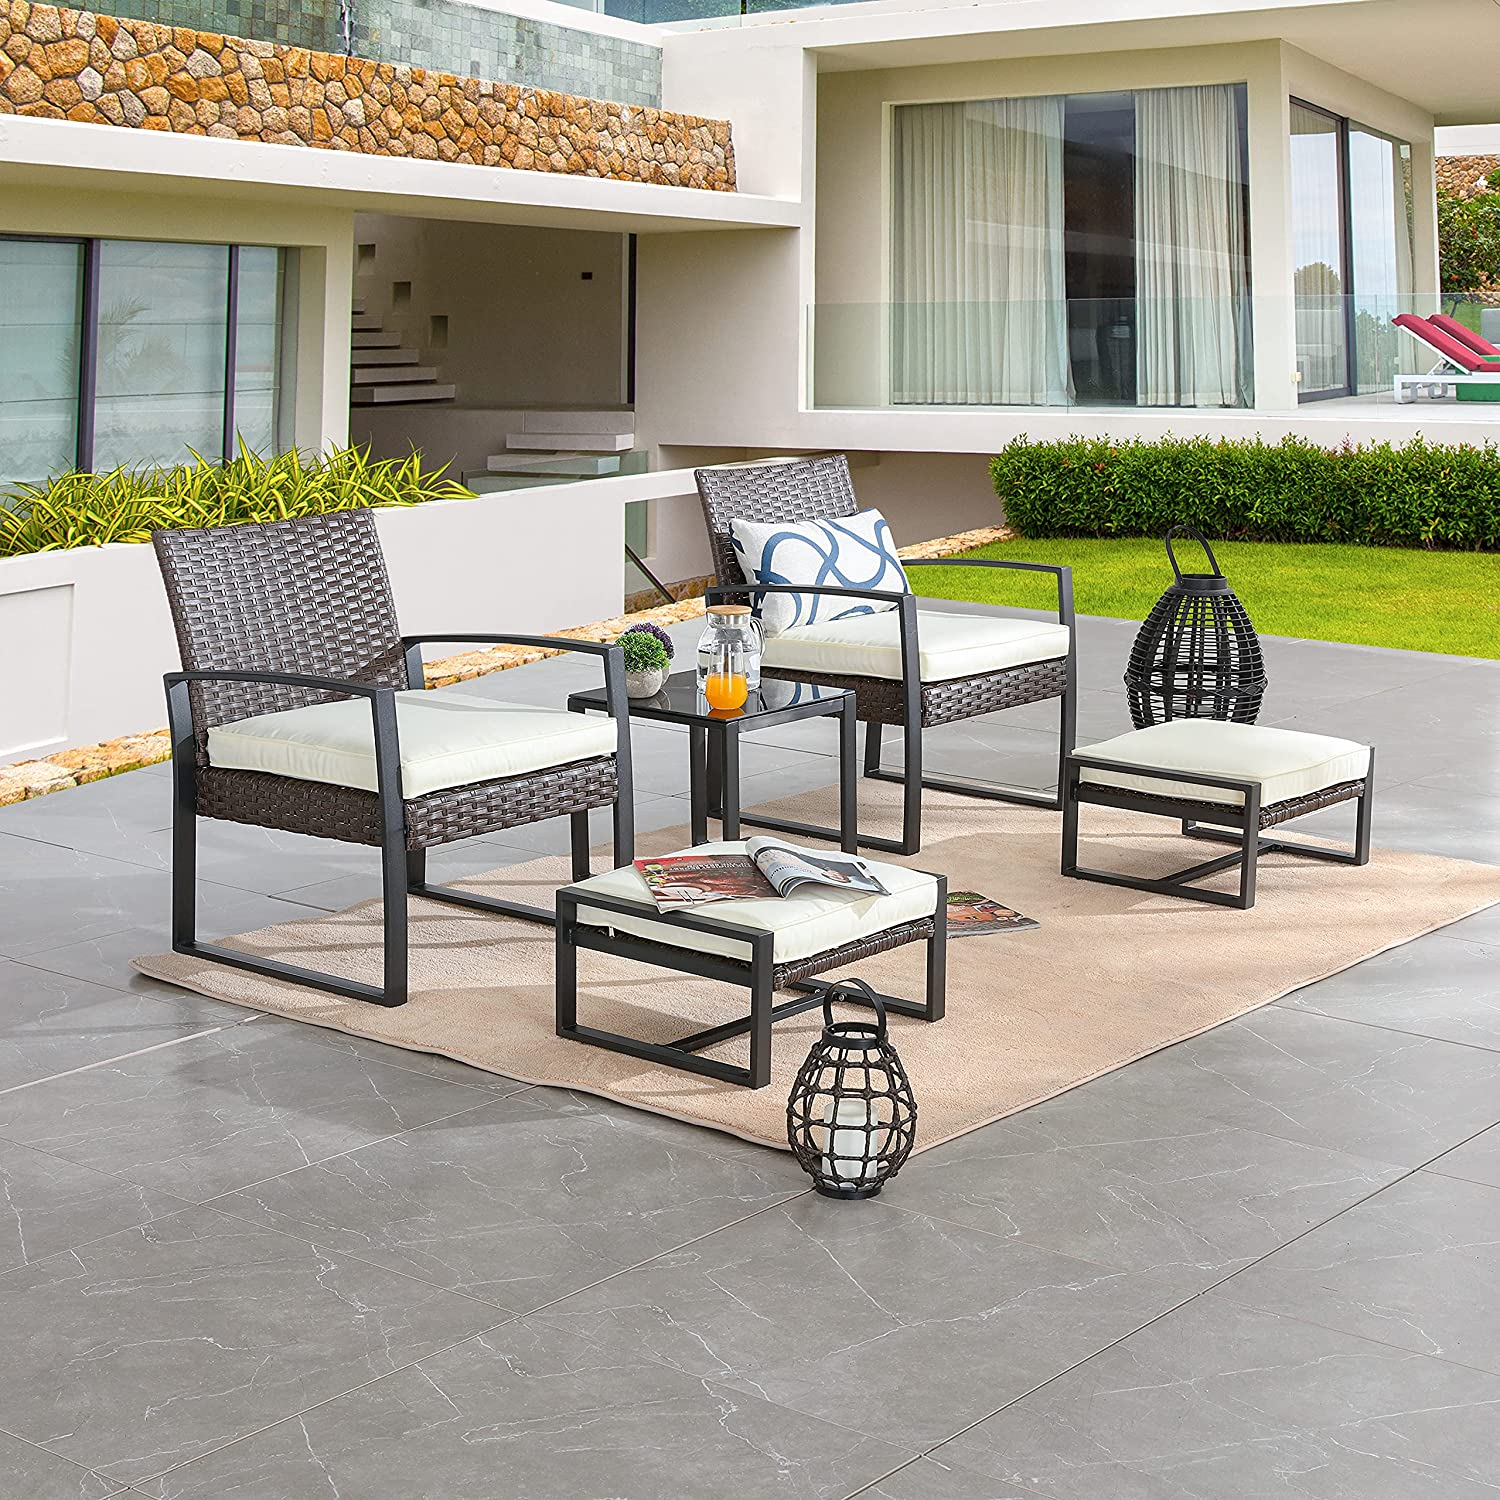 LOKATSE HOME 5-Piece Wicker Outdoor Conversation Set Patio Furniture PE Rattan All Weather Cushioned Chairs Balcony Porch with Ottoman and Glass Coffee Side Table, Beige